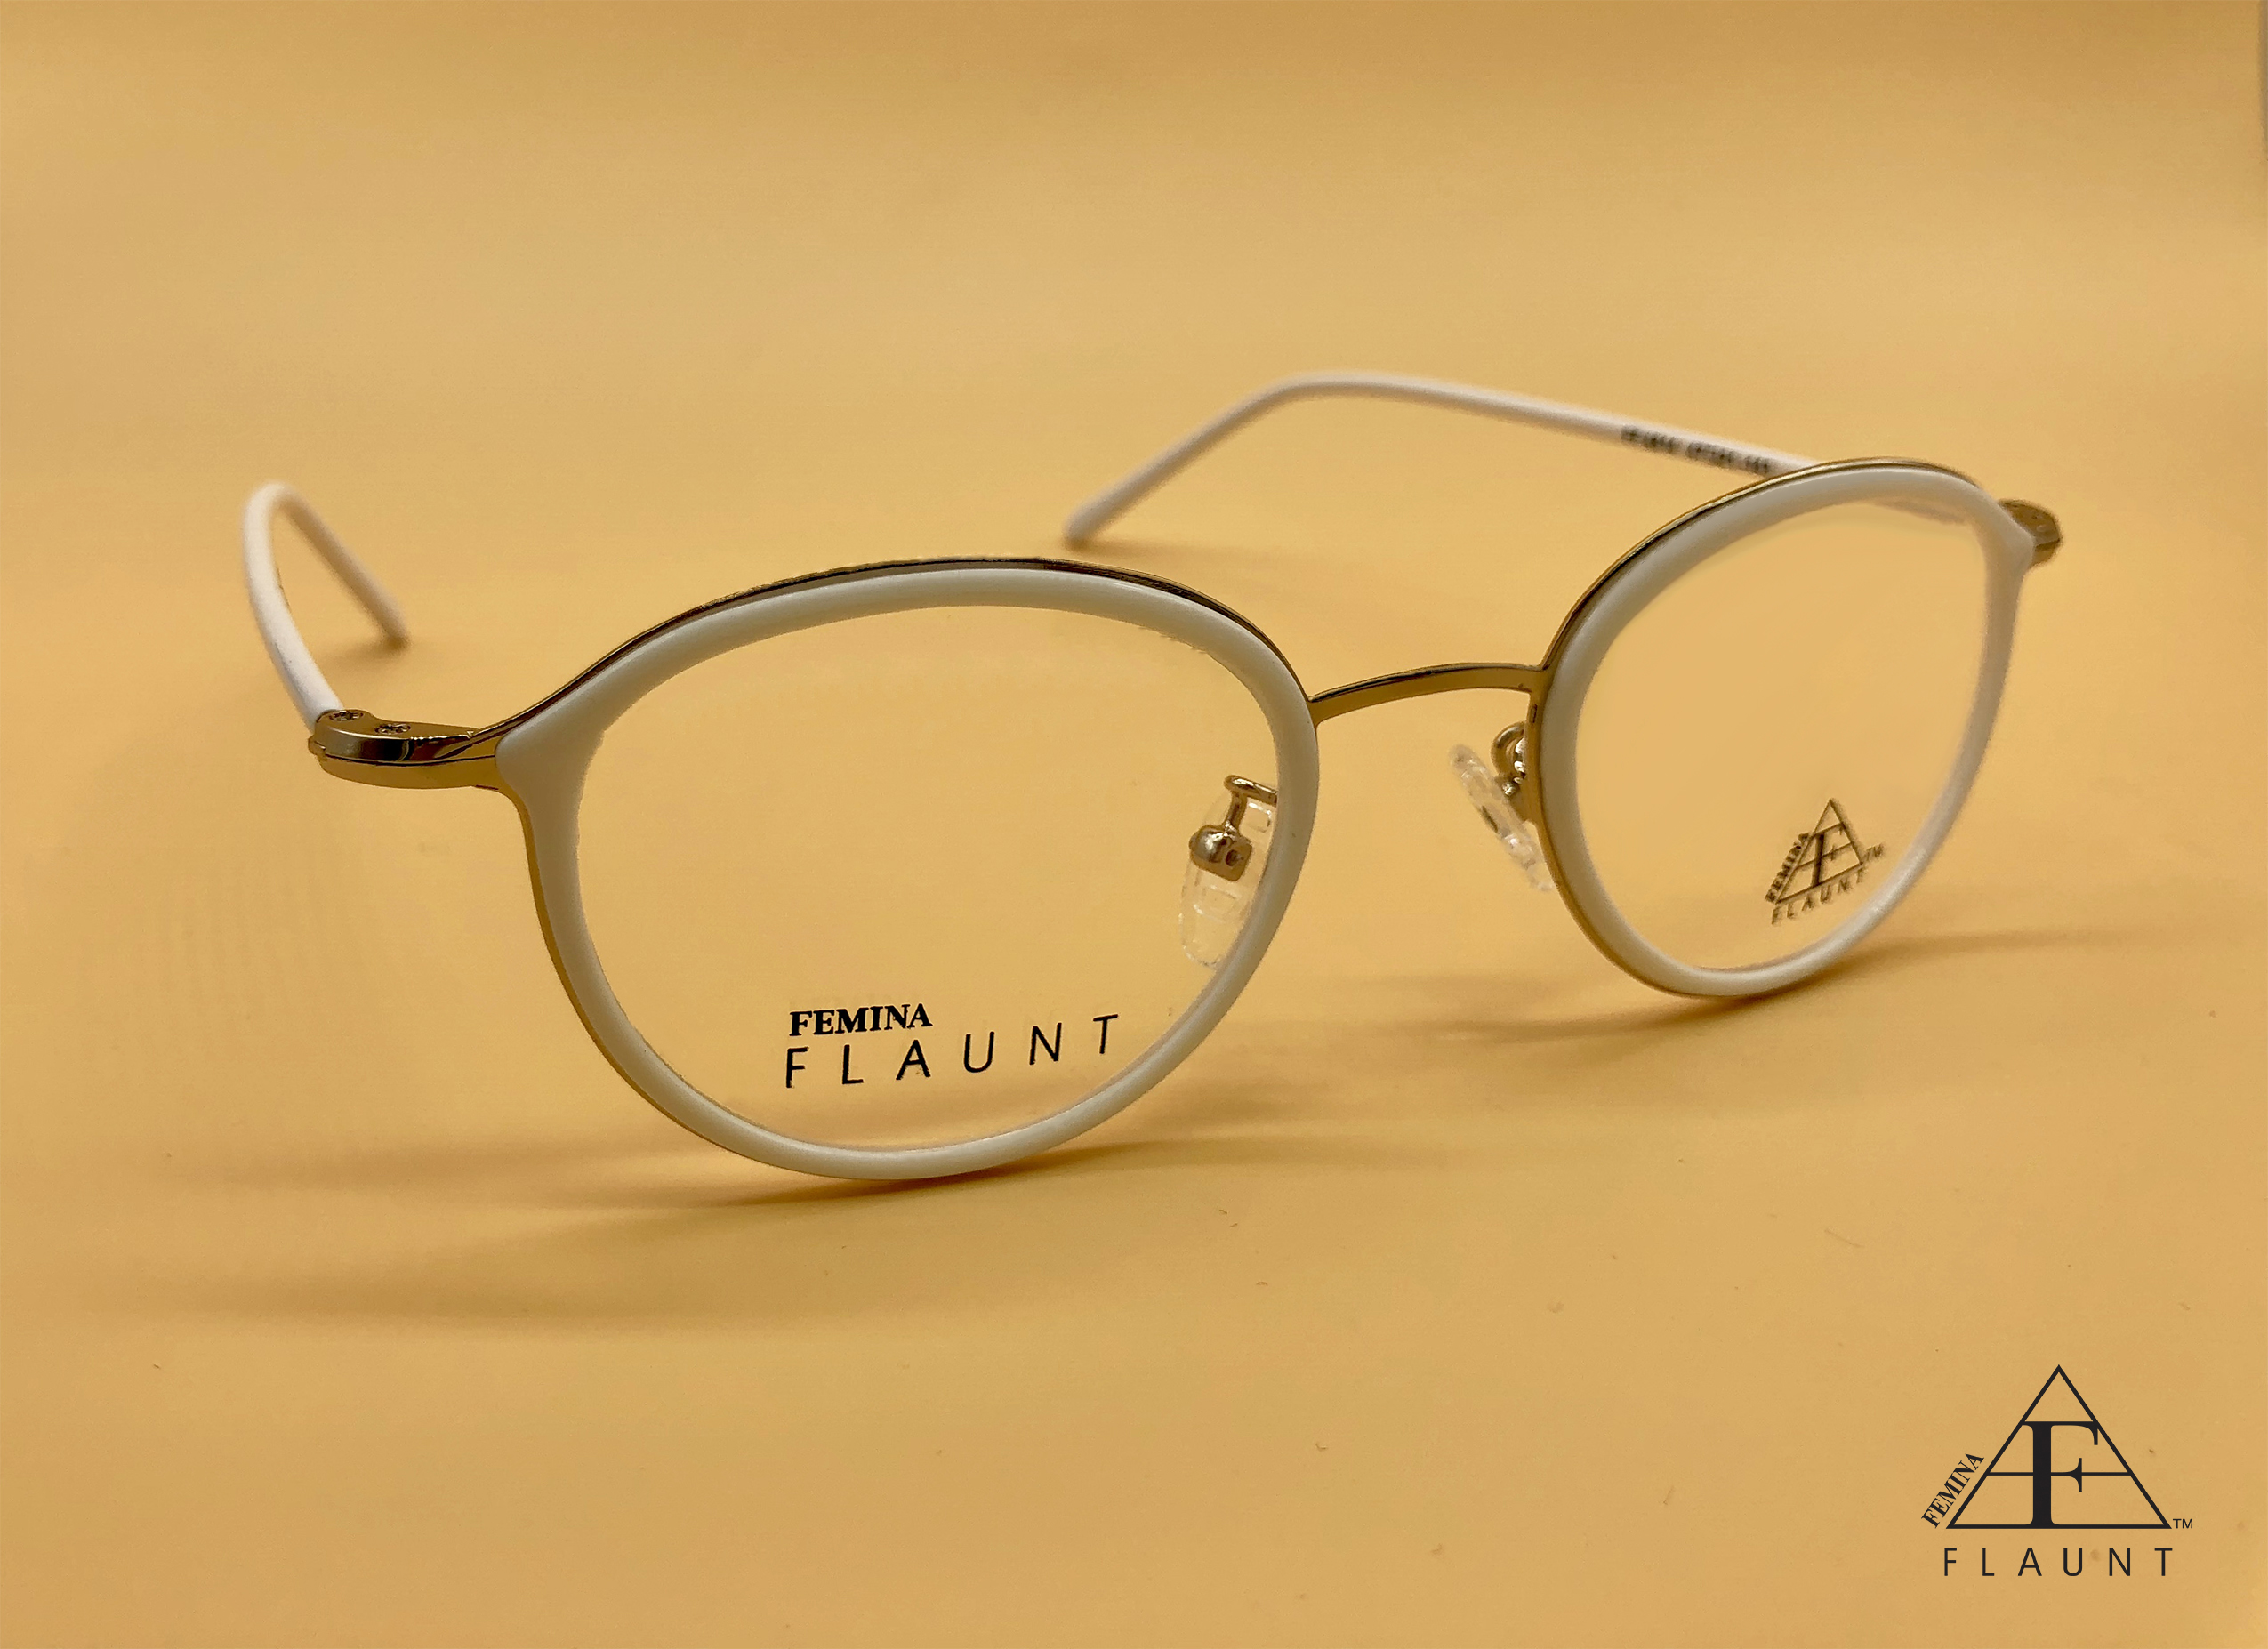 Femina Flaunt Eyewear (1)